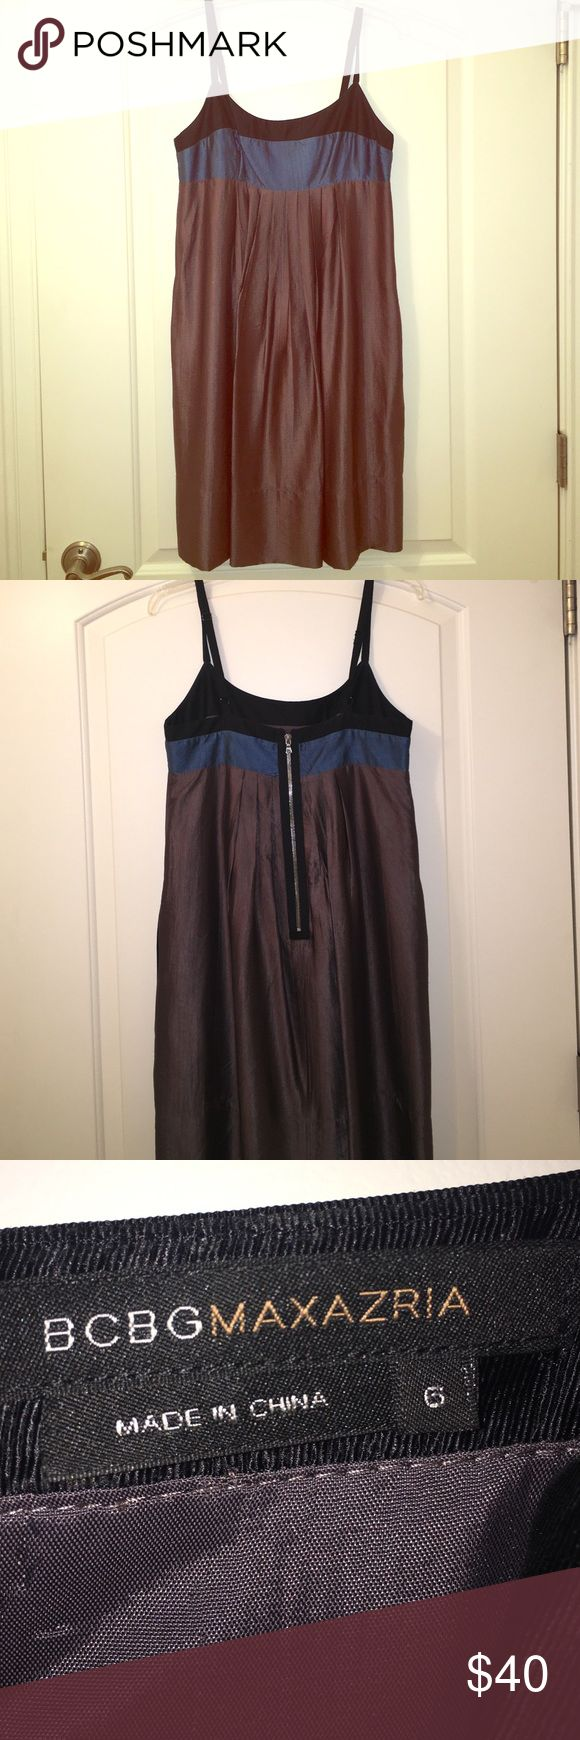 BCBG Maxazria Metallic Party Dress Chic BCBG party dress.  Fully lined with adjustable straps.  Metallic sheen to fabric.  Worn 3 times to parties, in great condition. BCBGMaxAzria Dresses Midi